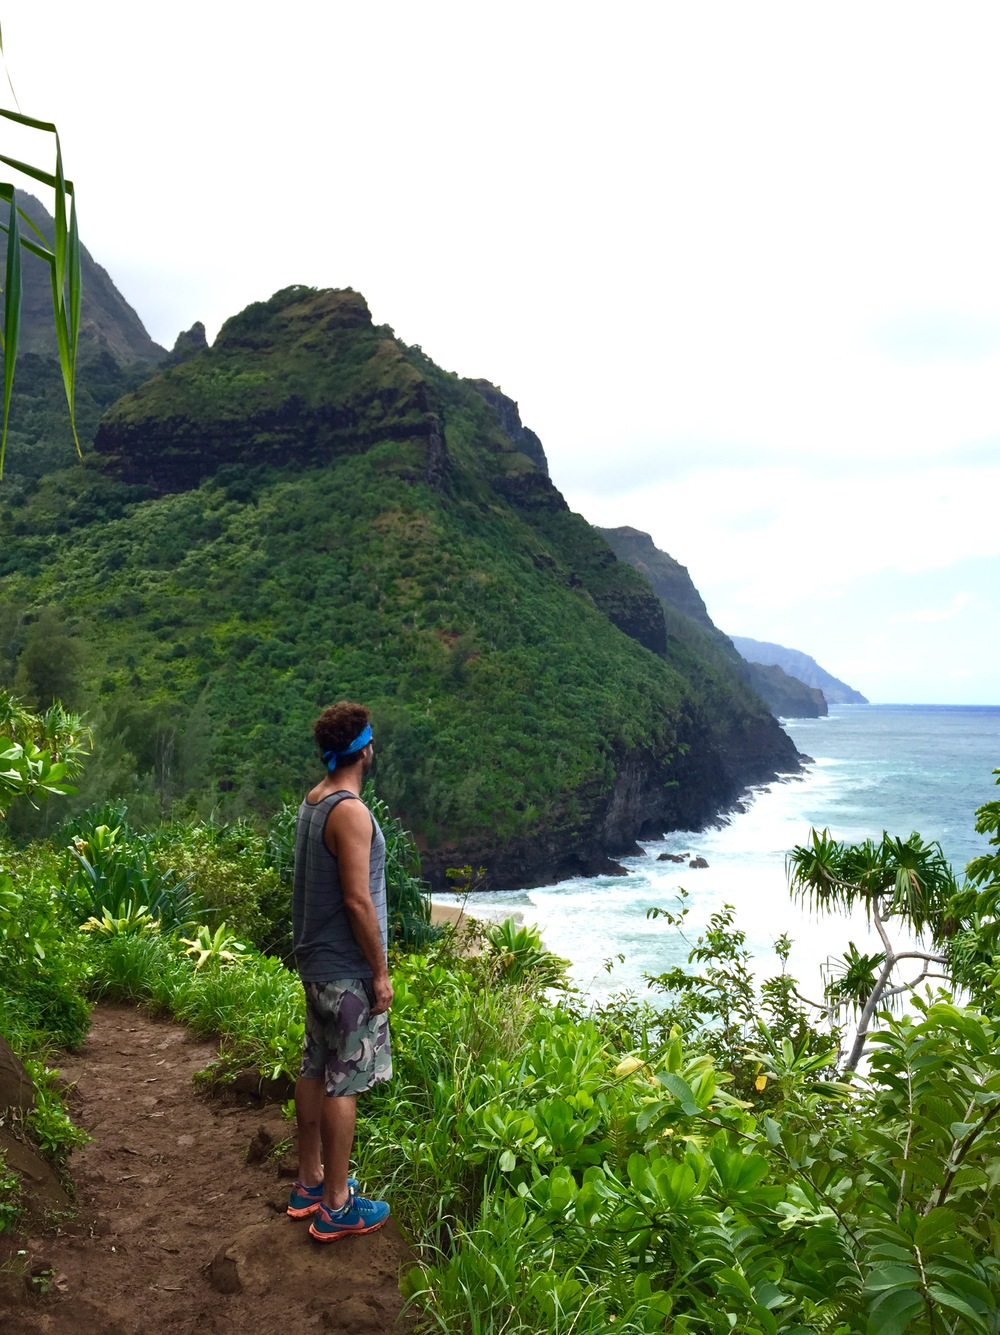 Trekking the Napali Coast, Kauai, Hawaii